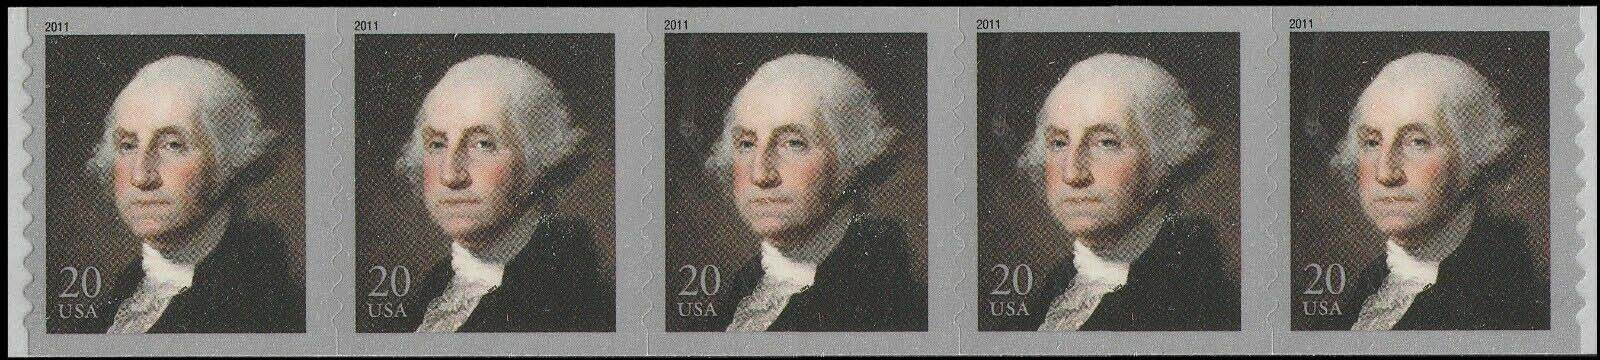 Scott #4512, 20 Cents Coil of 5 stamps, George Washington Coil